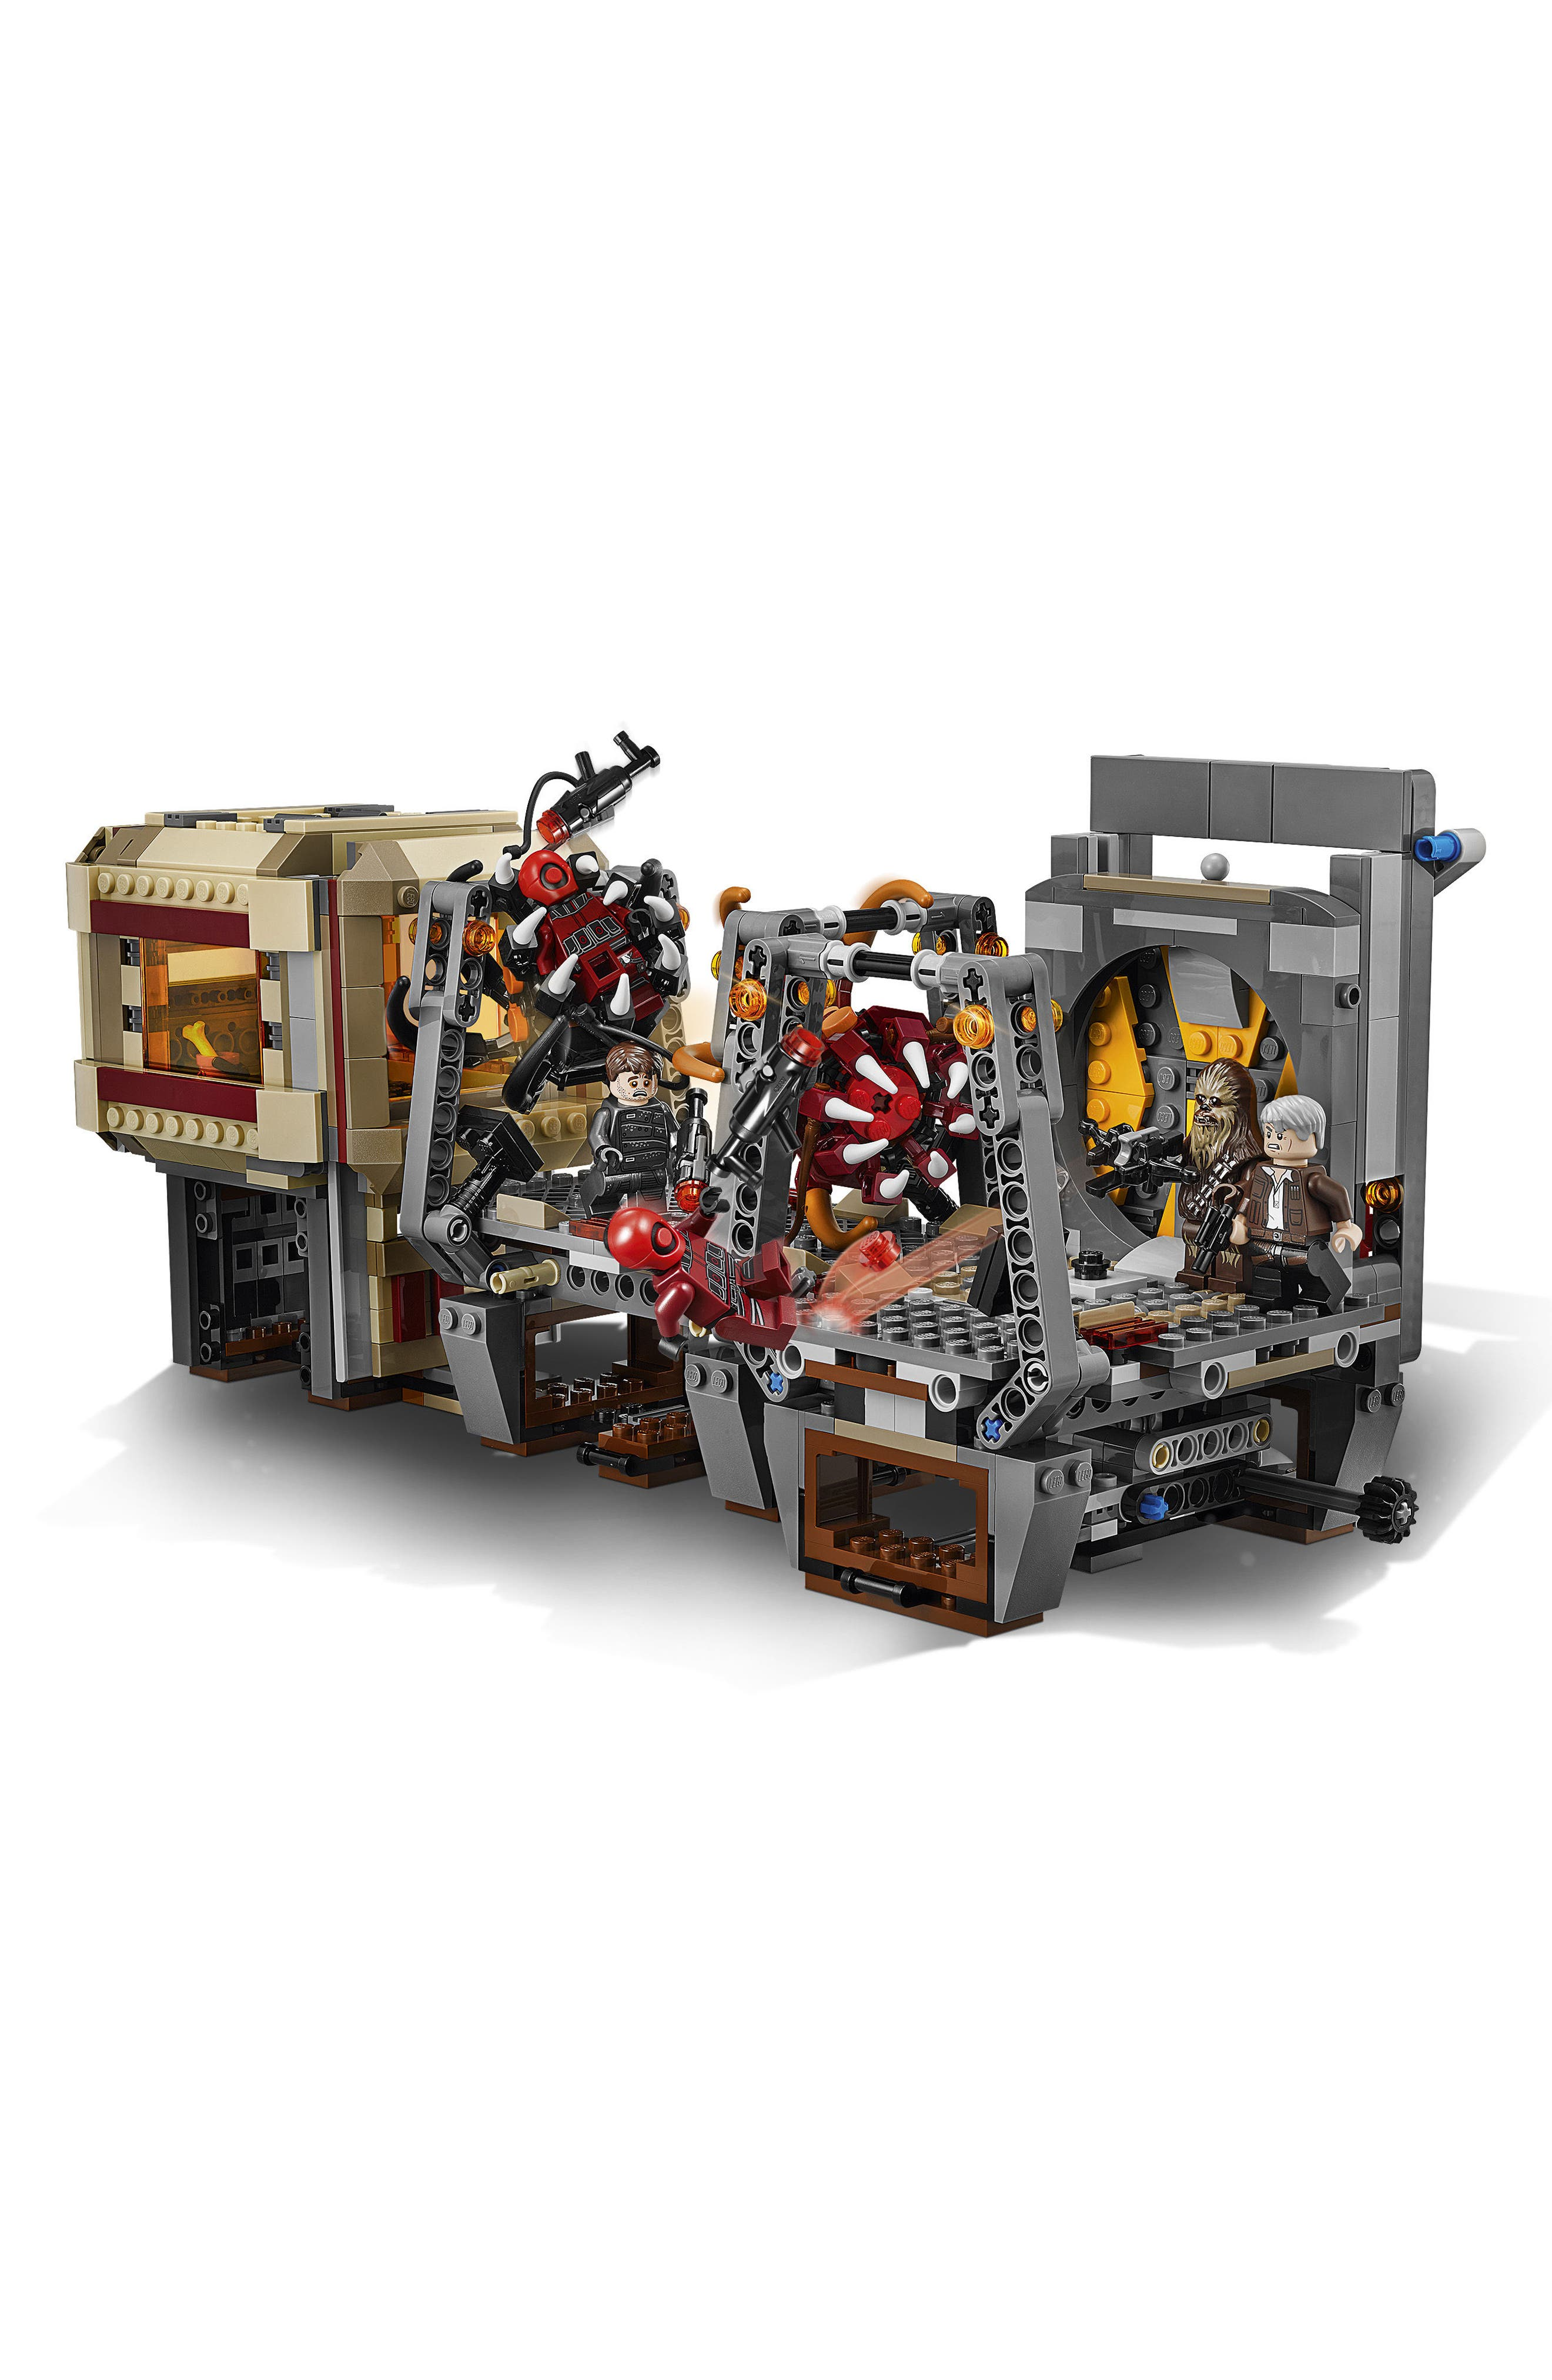 Star Wars<sup>™</sup>: The Force Awakens Rathtar<sup>™</sup> Escape Play Set - 75180,                             Alternate thumbnail 3, color,                             Multi